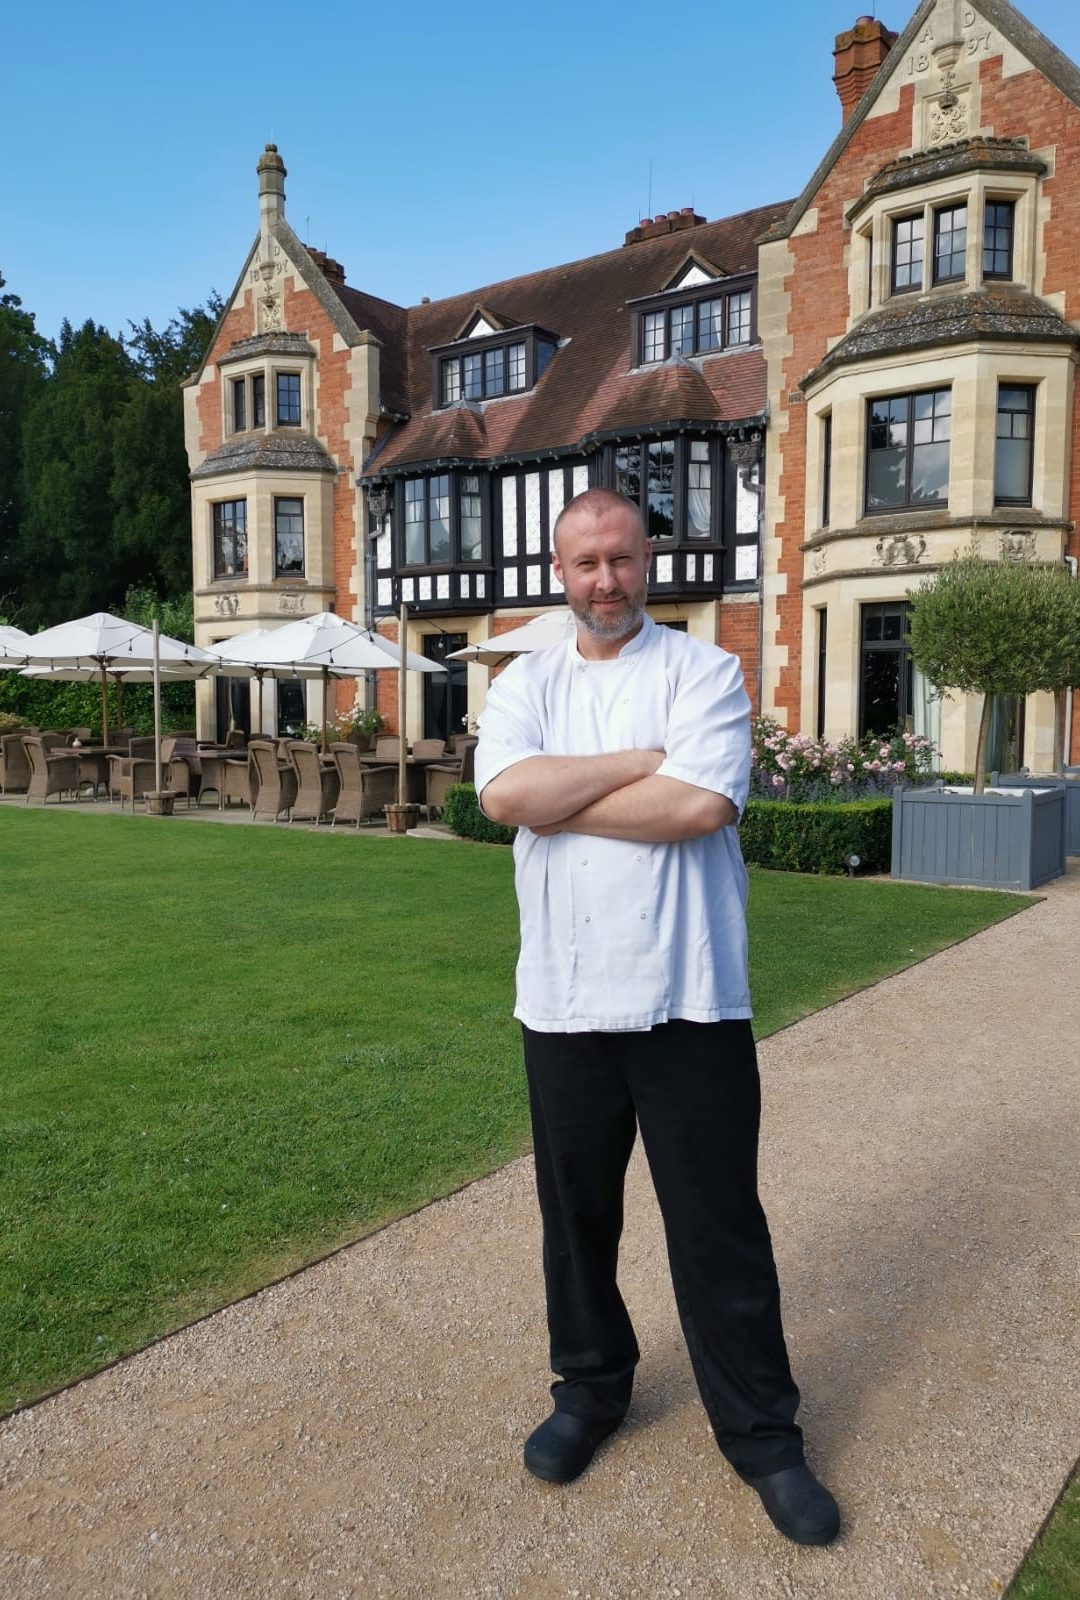 Worcestershire's Leading Boutique Hotel Appoints New Head Chef